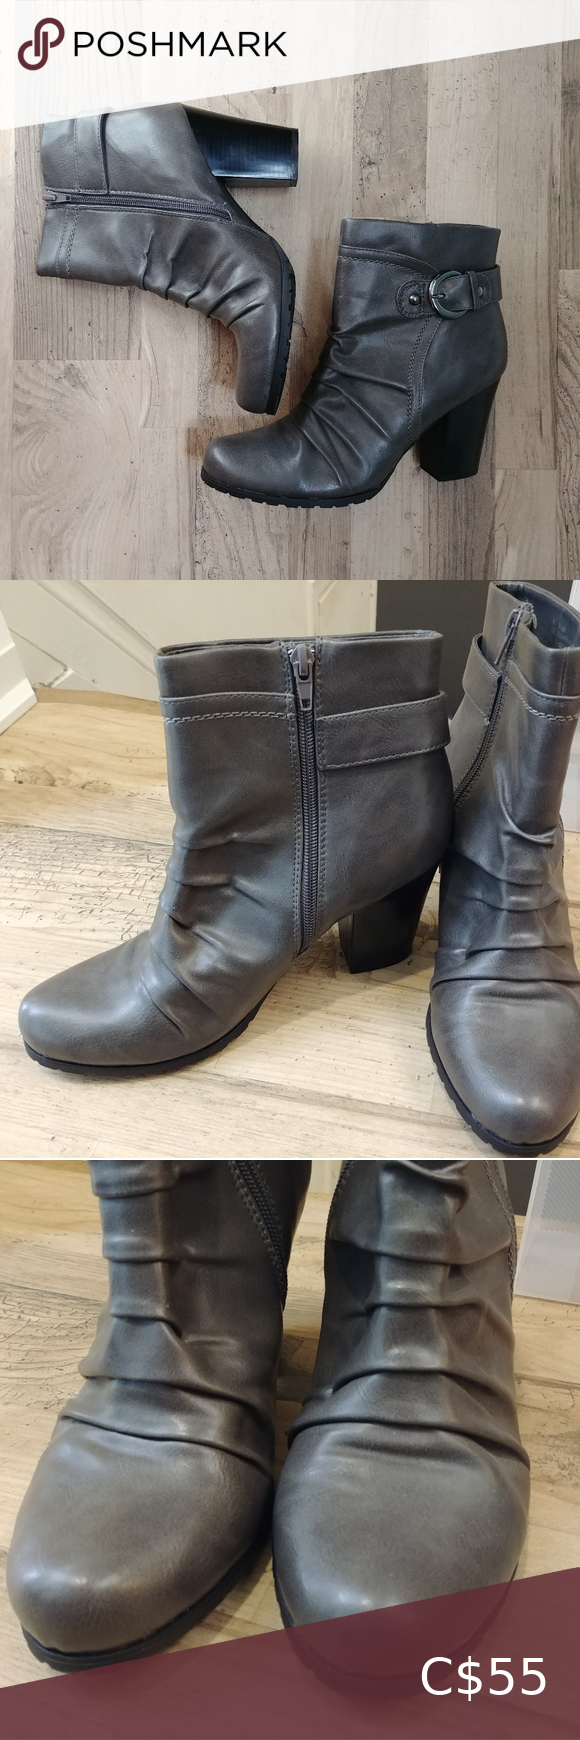 New Jessica Simpson New Faux Leather Booties